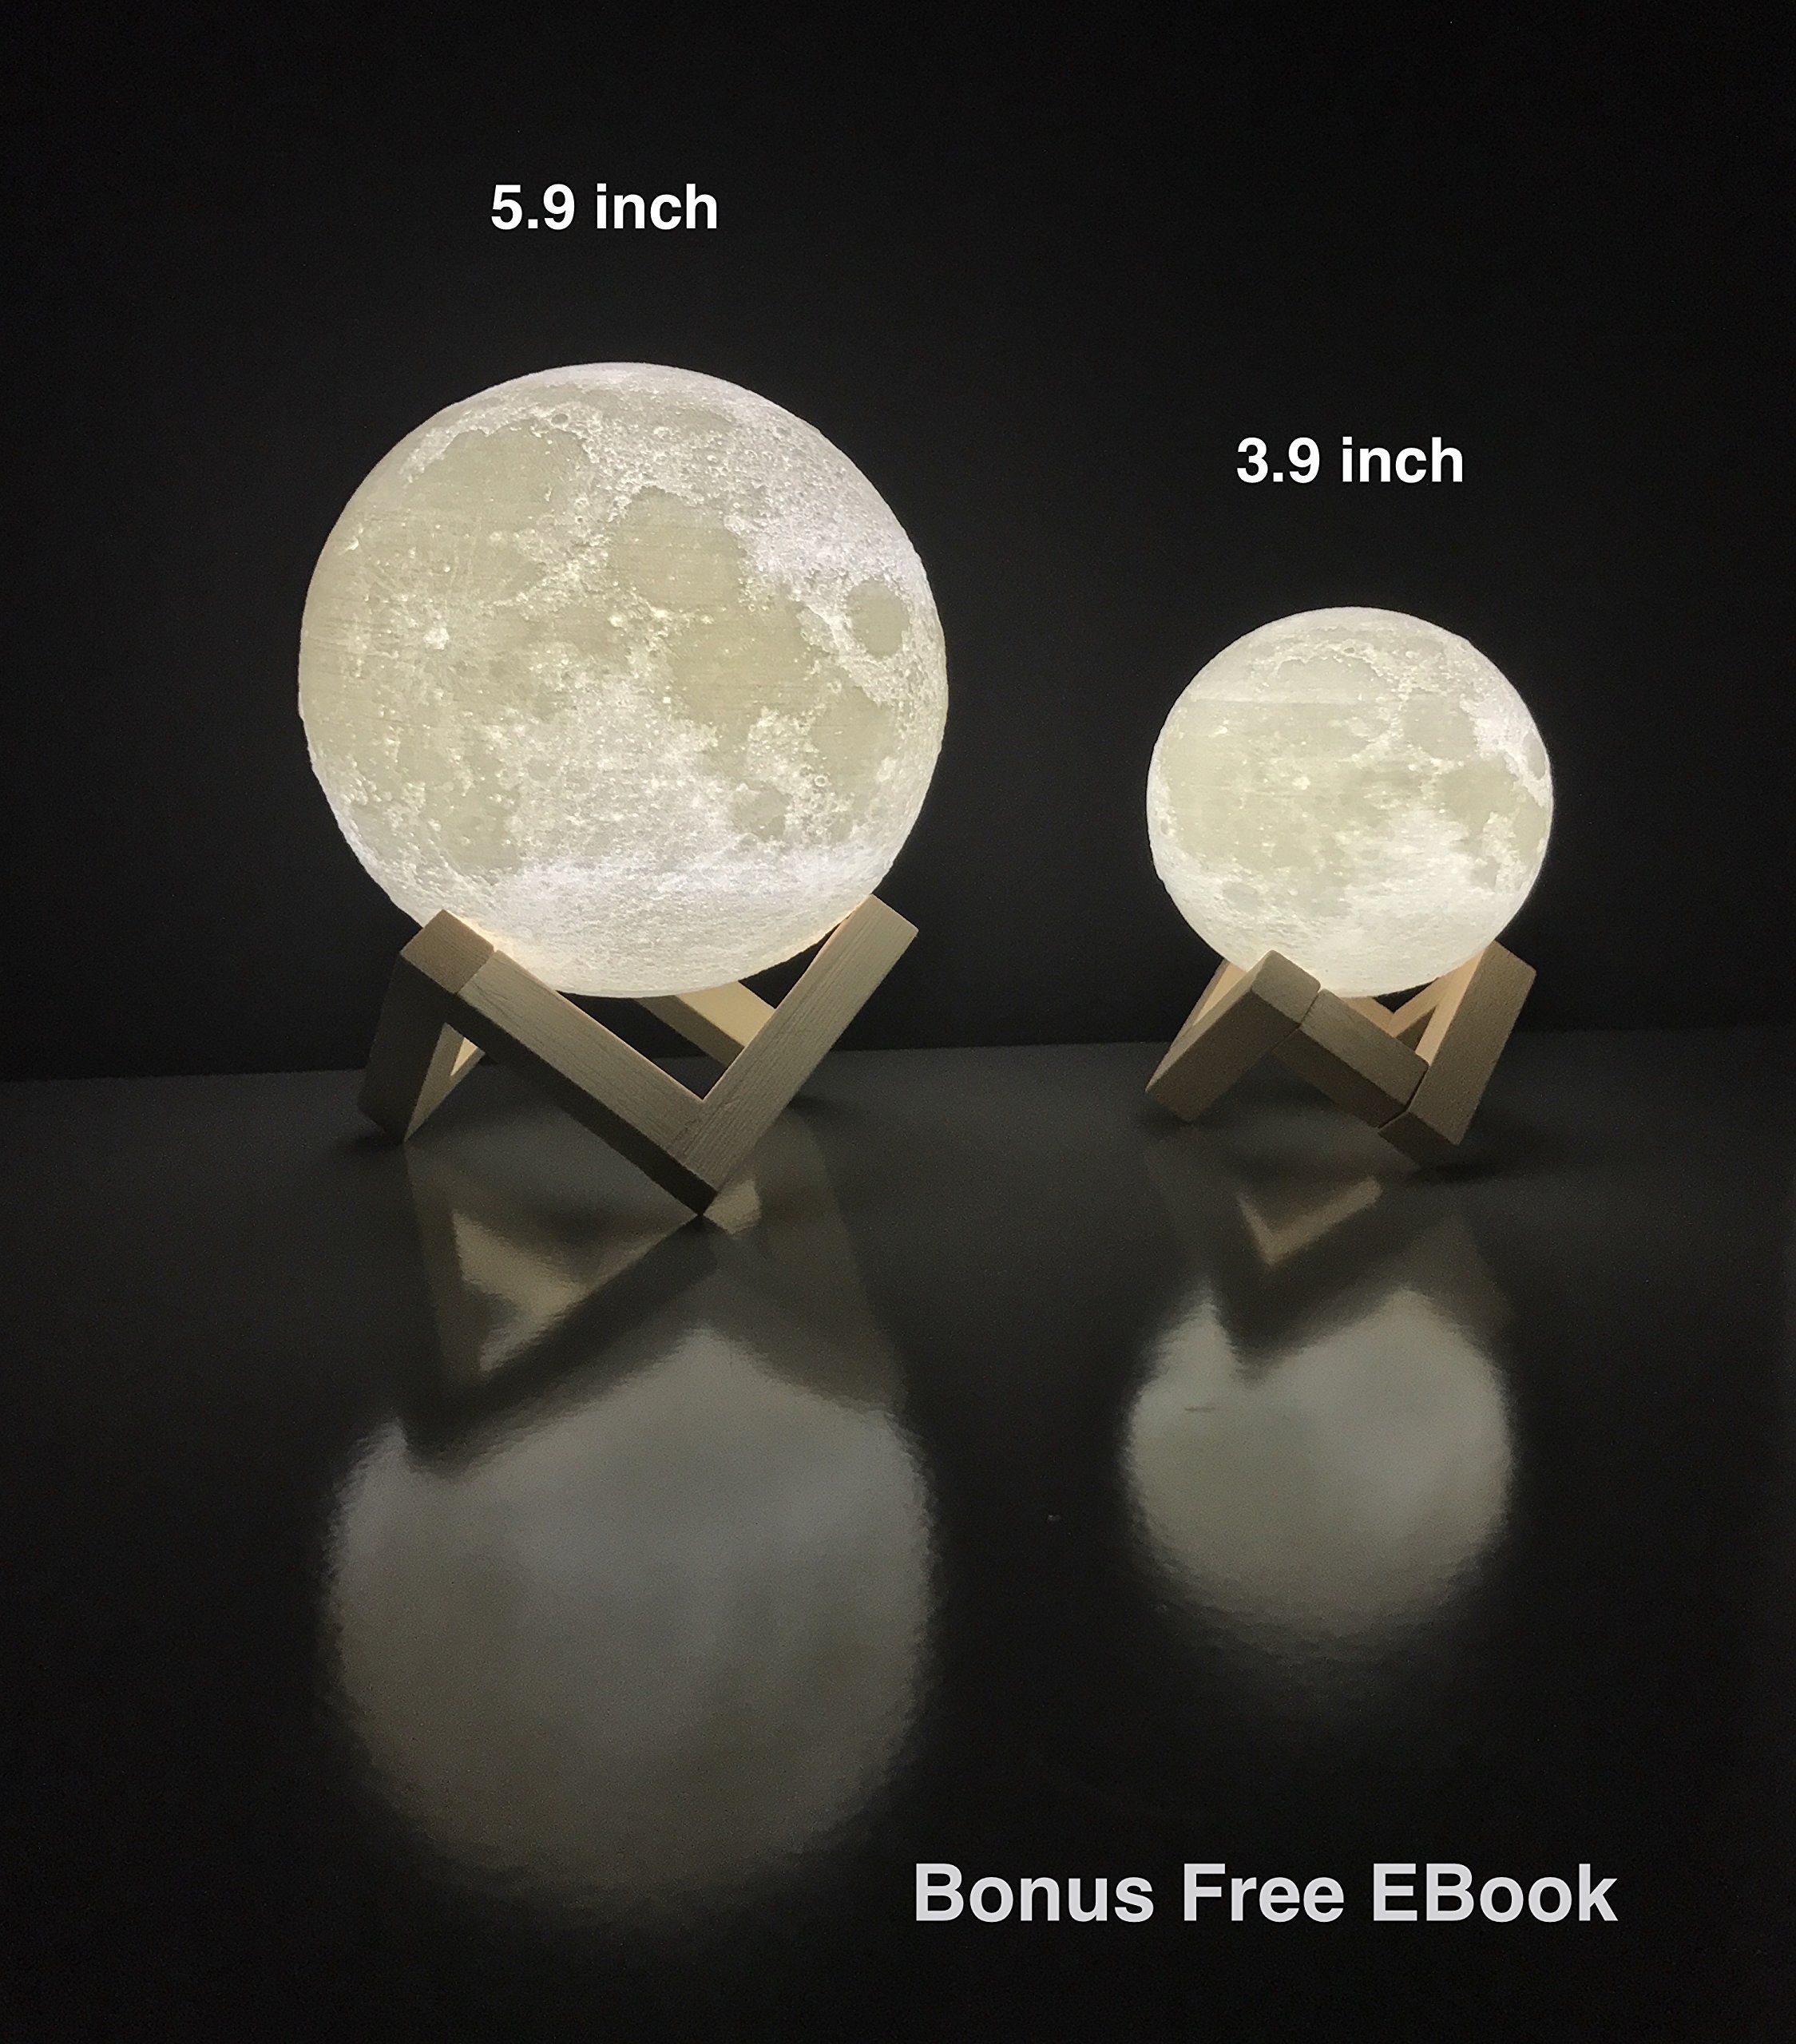 Moon Lamp Round Night Light 3d Printed Free Ebook Dimmable Brightness Touch Sensor Usb Charger Warm And Cool Whit Kid Room Decor Kids Room Decor Night Light